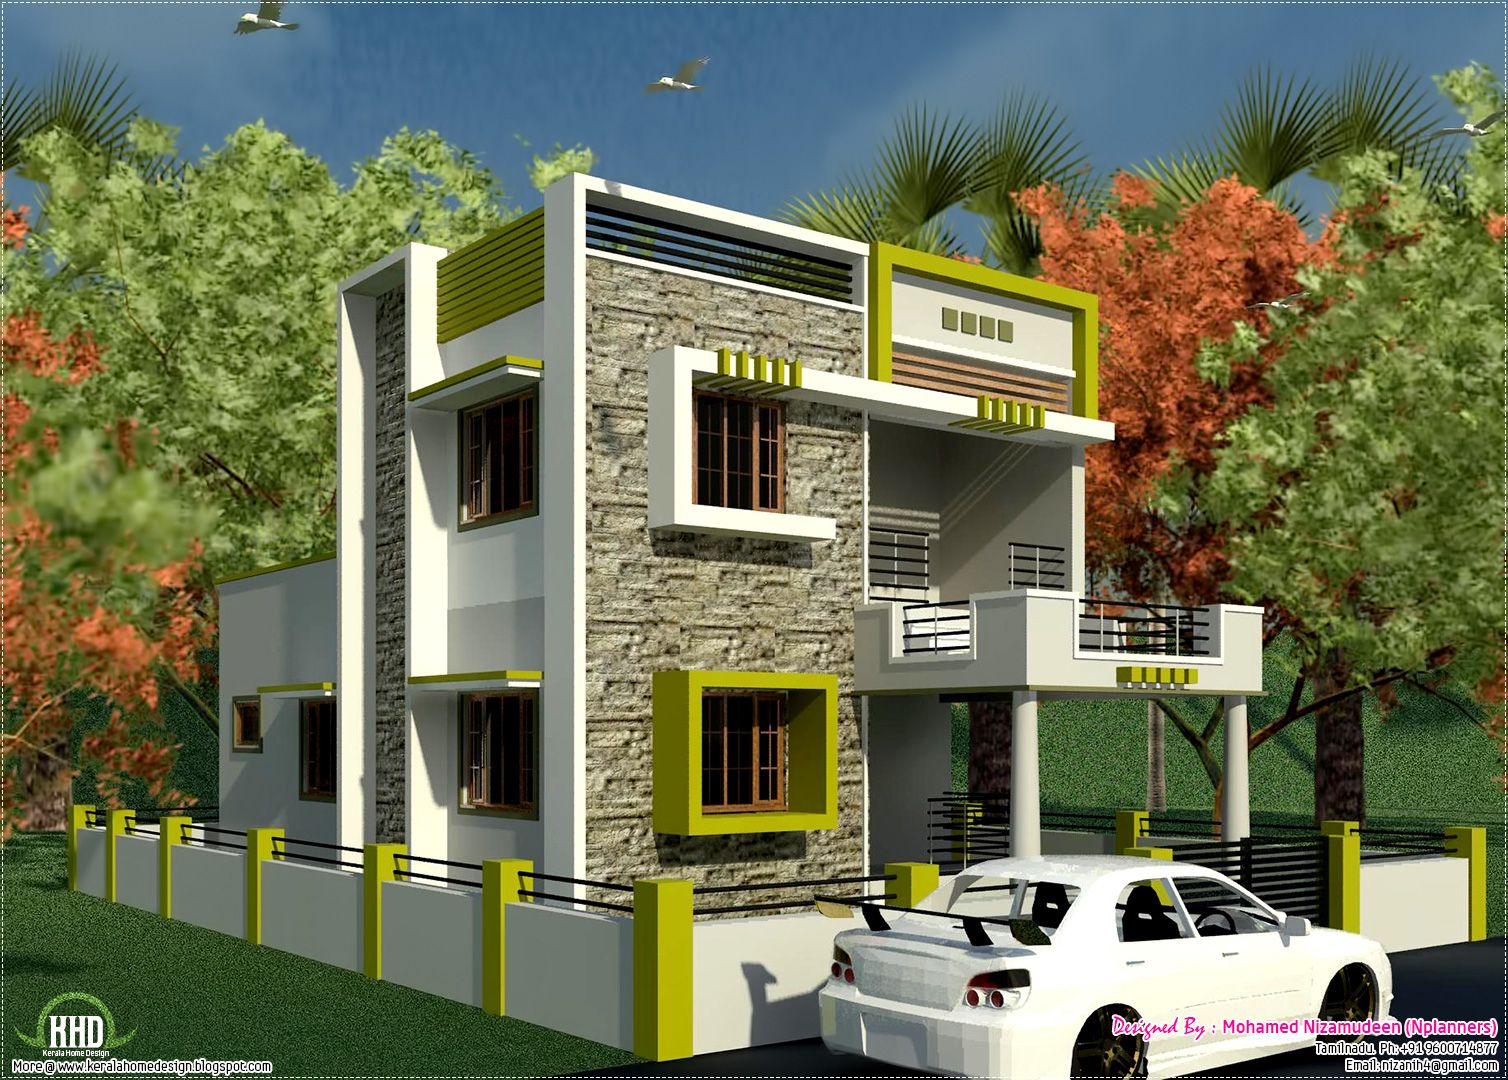 Small house with car park design tobfav com ideas for the house pinterest smallest house Small modern home design ideas